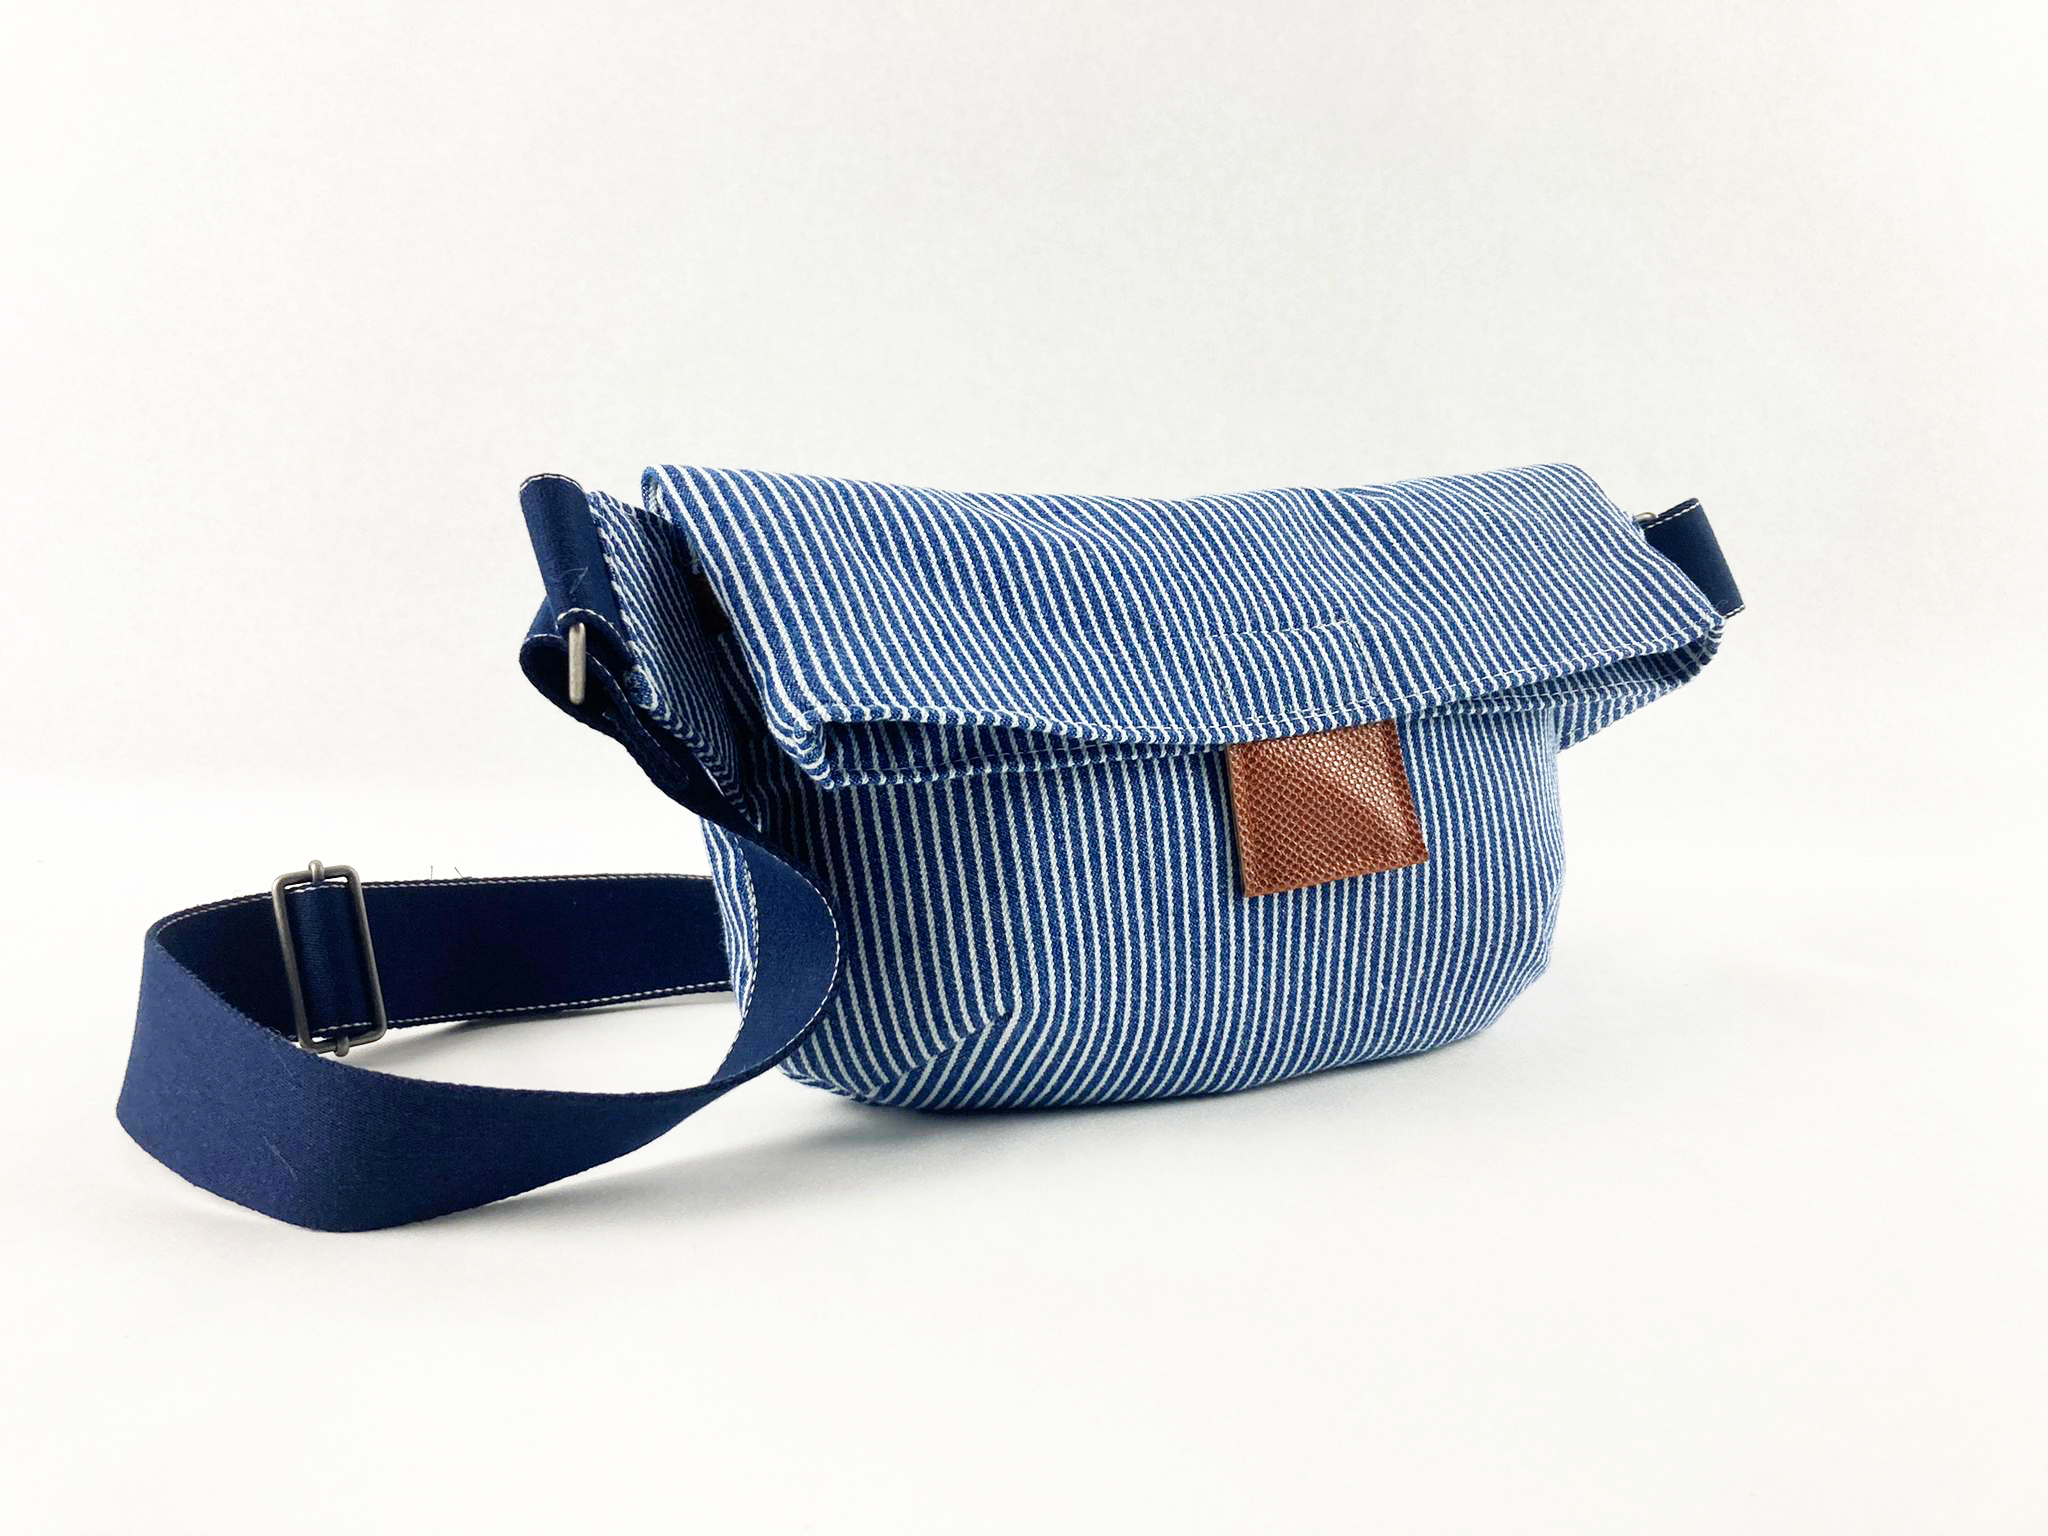 "Crossbag Cili ""in blauweiss gestreift"""